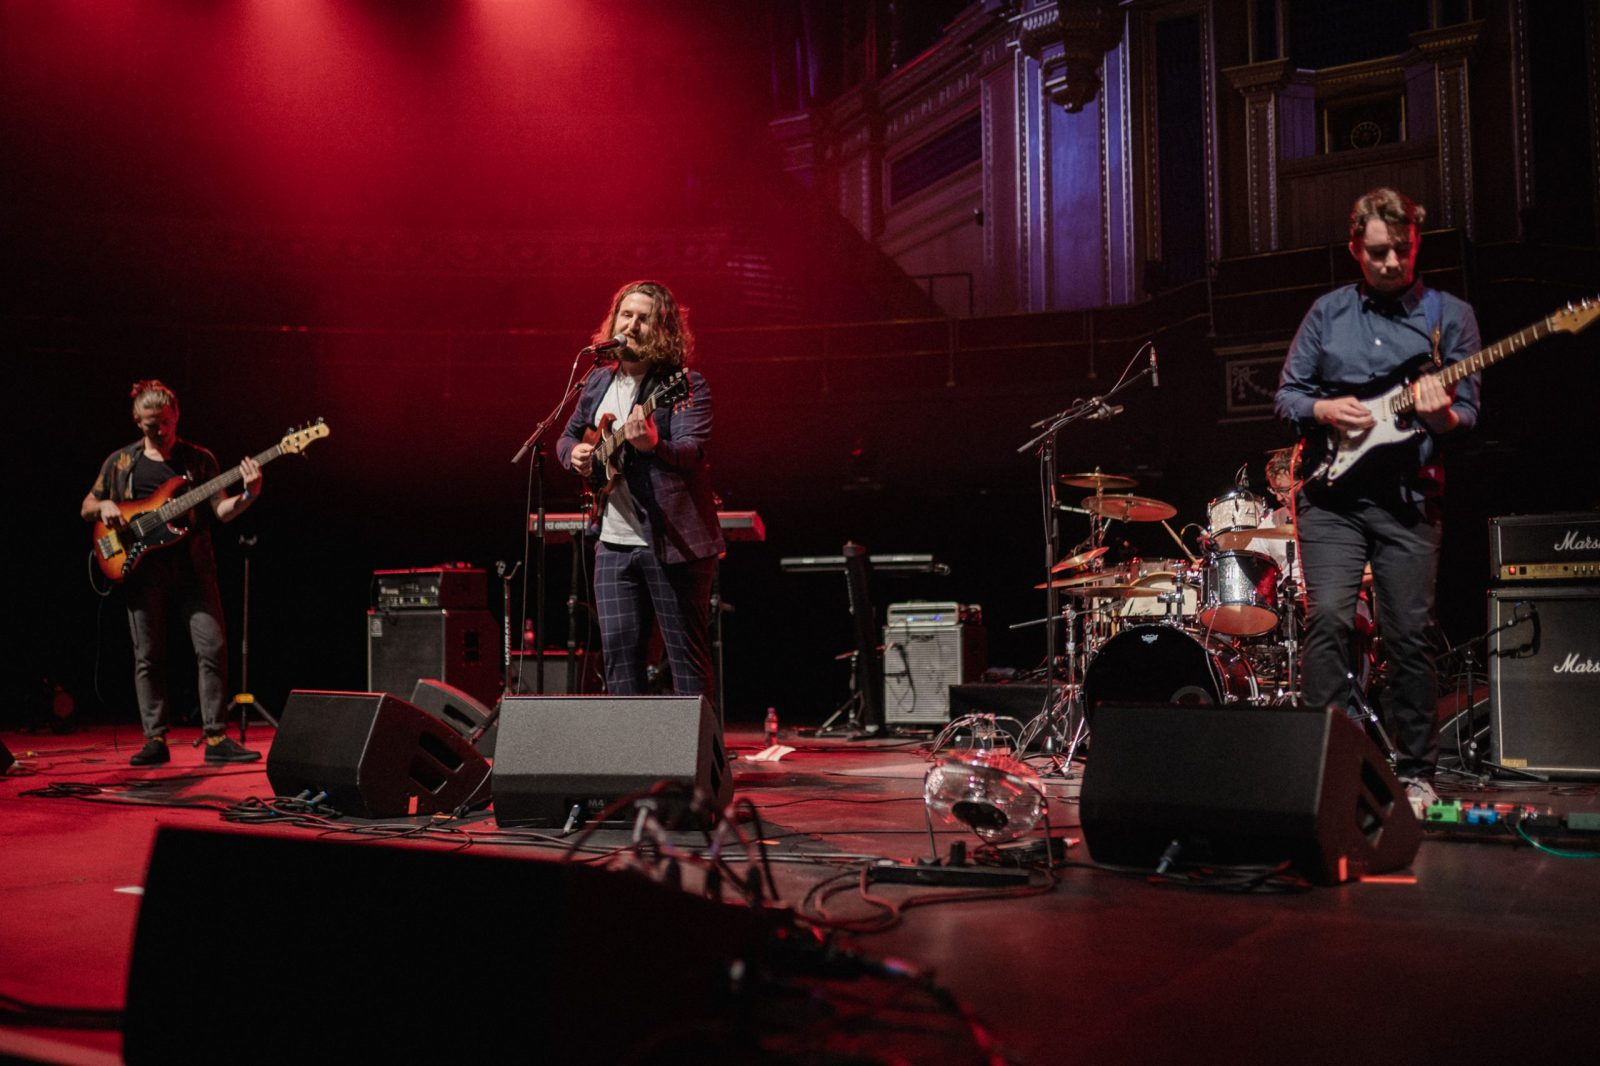 Toucan live at the royal albert hall. live music london